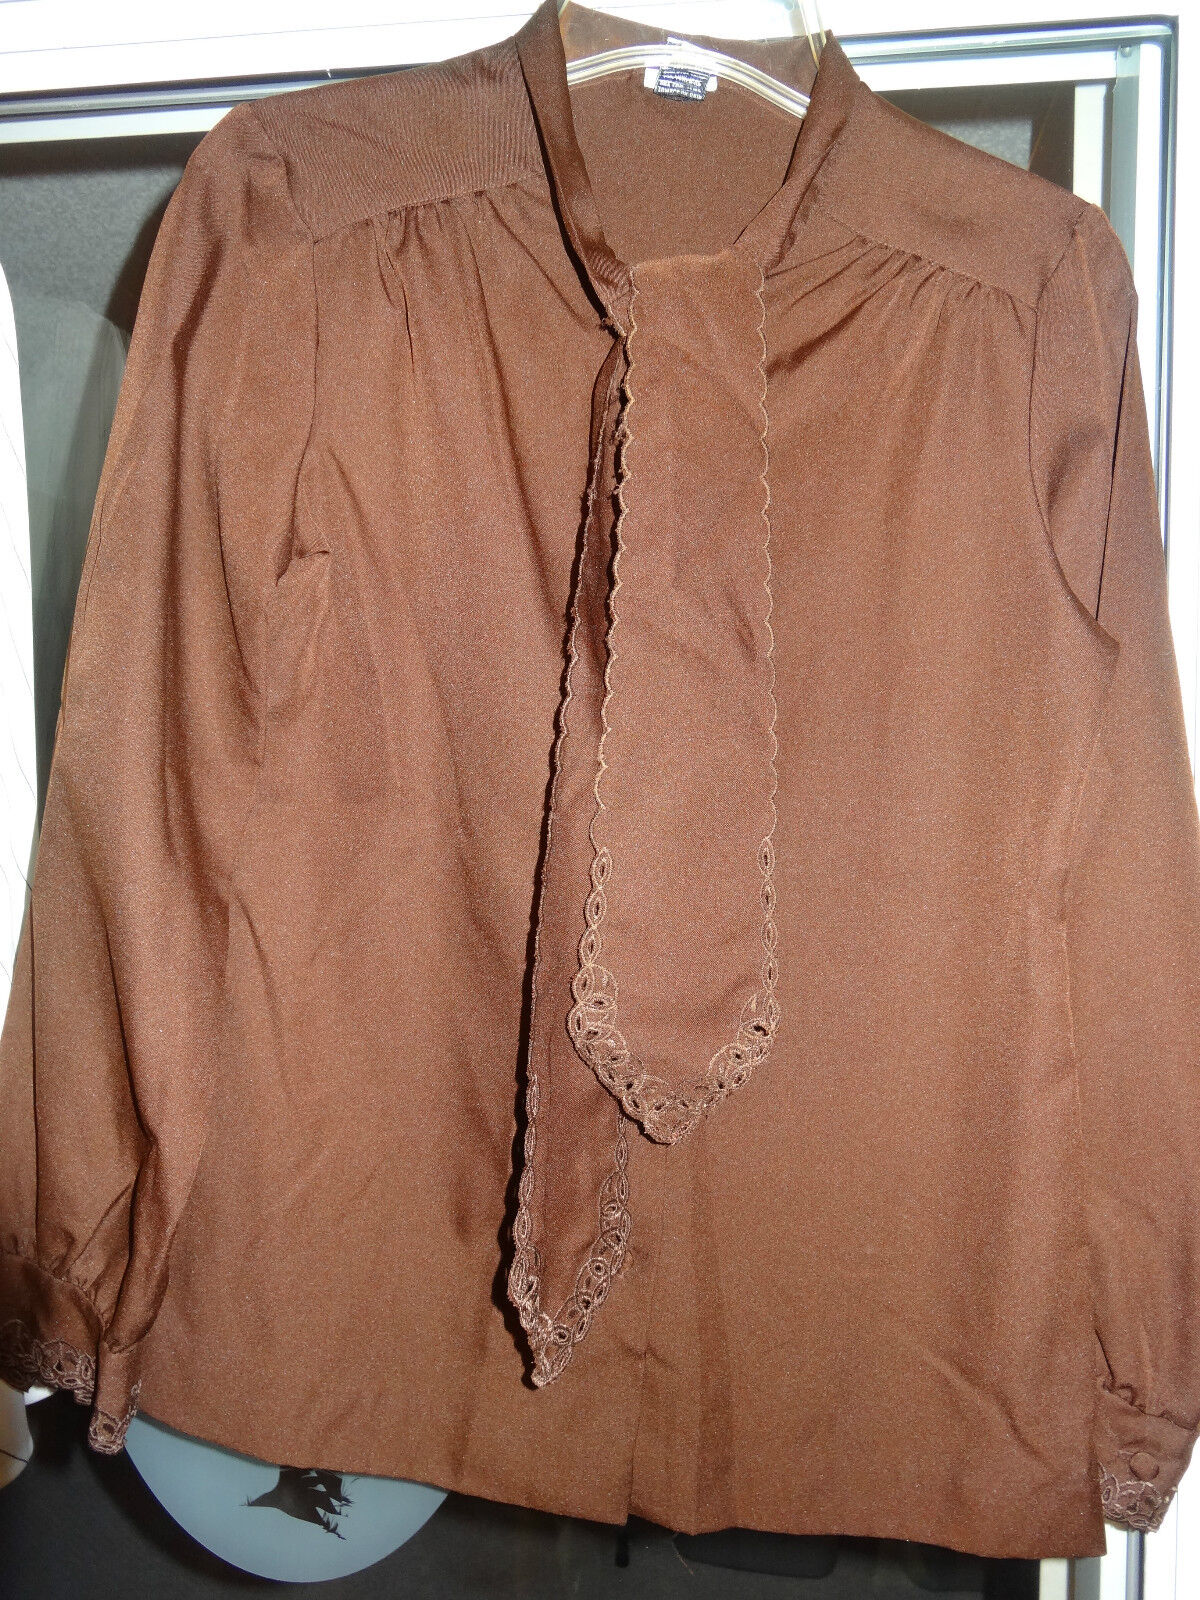 DIVISION II Ladies Womens Long Sleeve Button Down Blouse Top Size 8 Brown